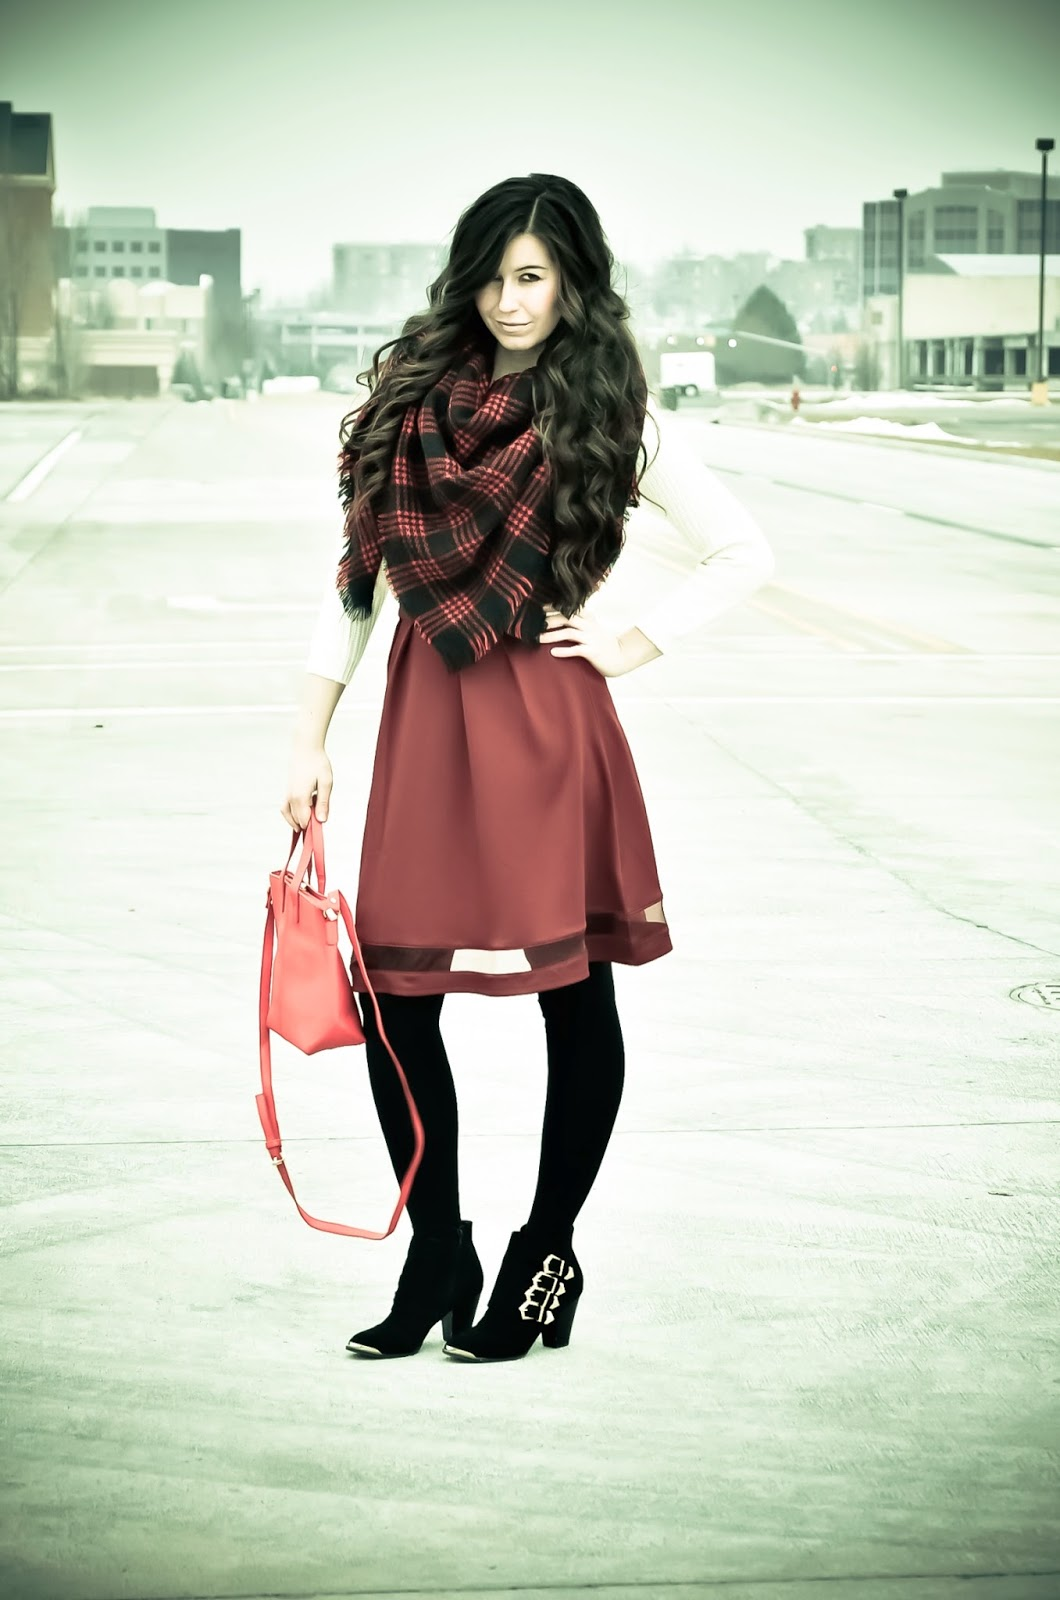 blanket scarf outfit, burgundy and black outfit, burgundy outfit, cozy outfit for winter, crop sweater, cropped sweater, Keeping it cozy wear, blanket scarf, plaid, burgundy and cream outfit, curly hair, sexy photoshoot,